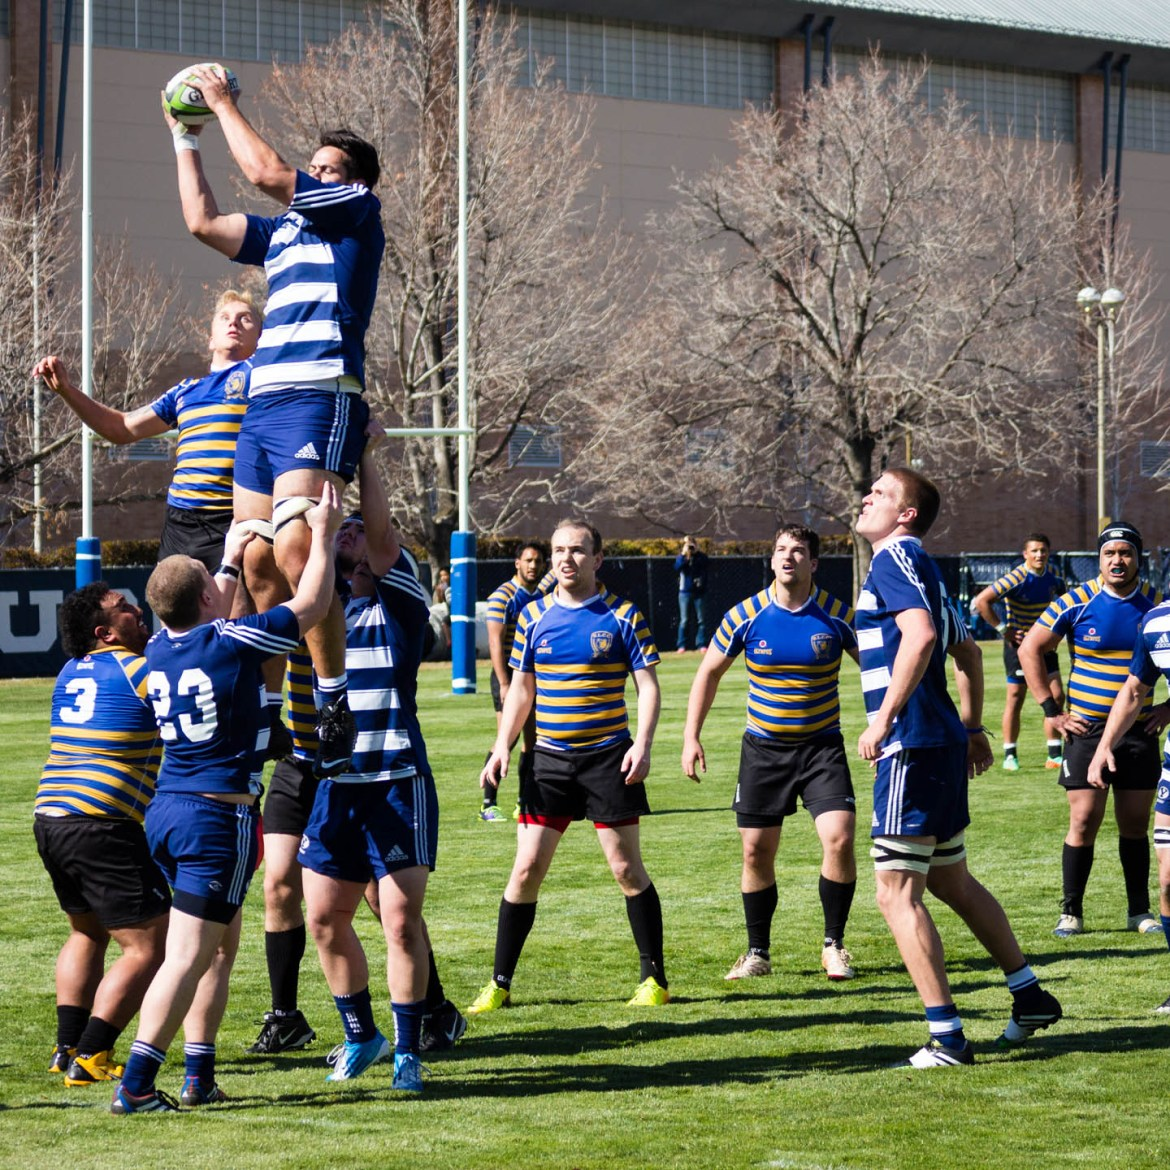 Rugby line-out